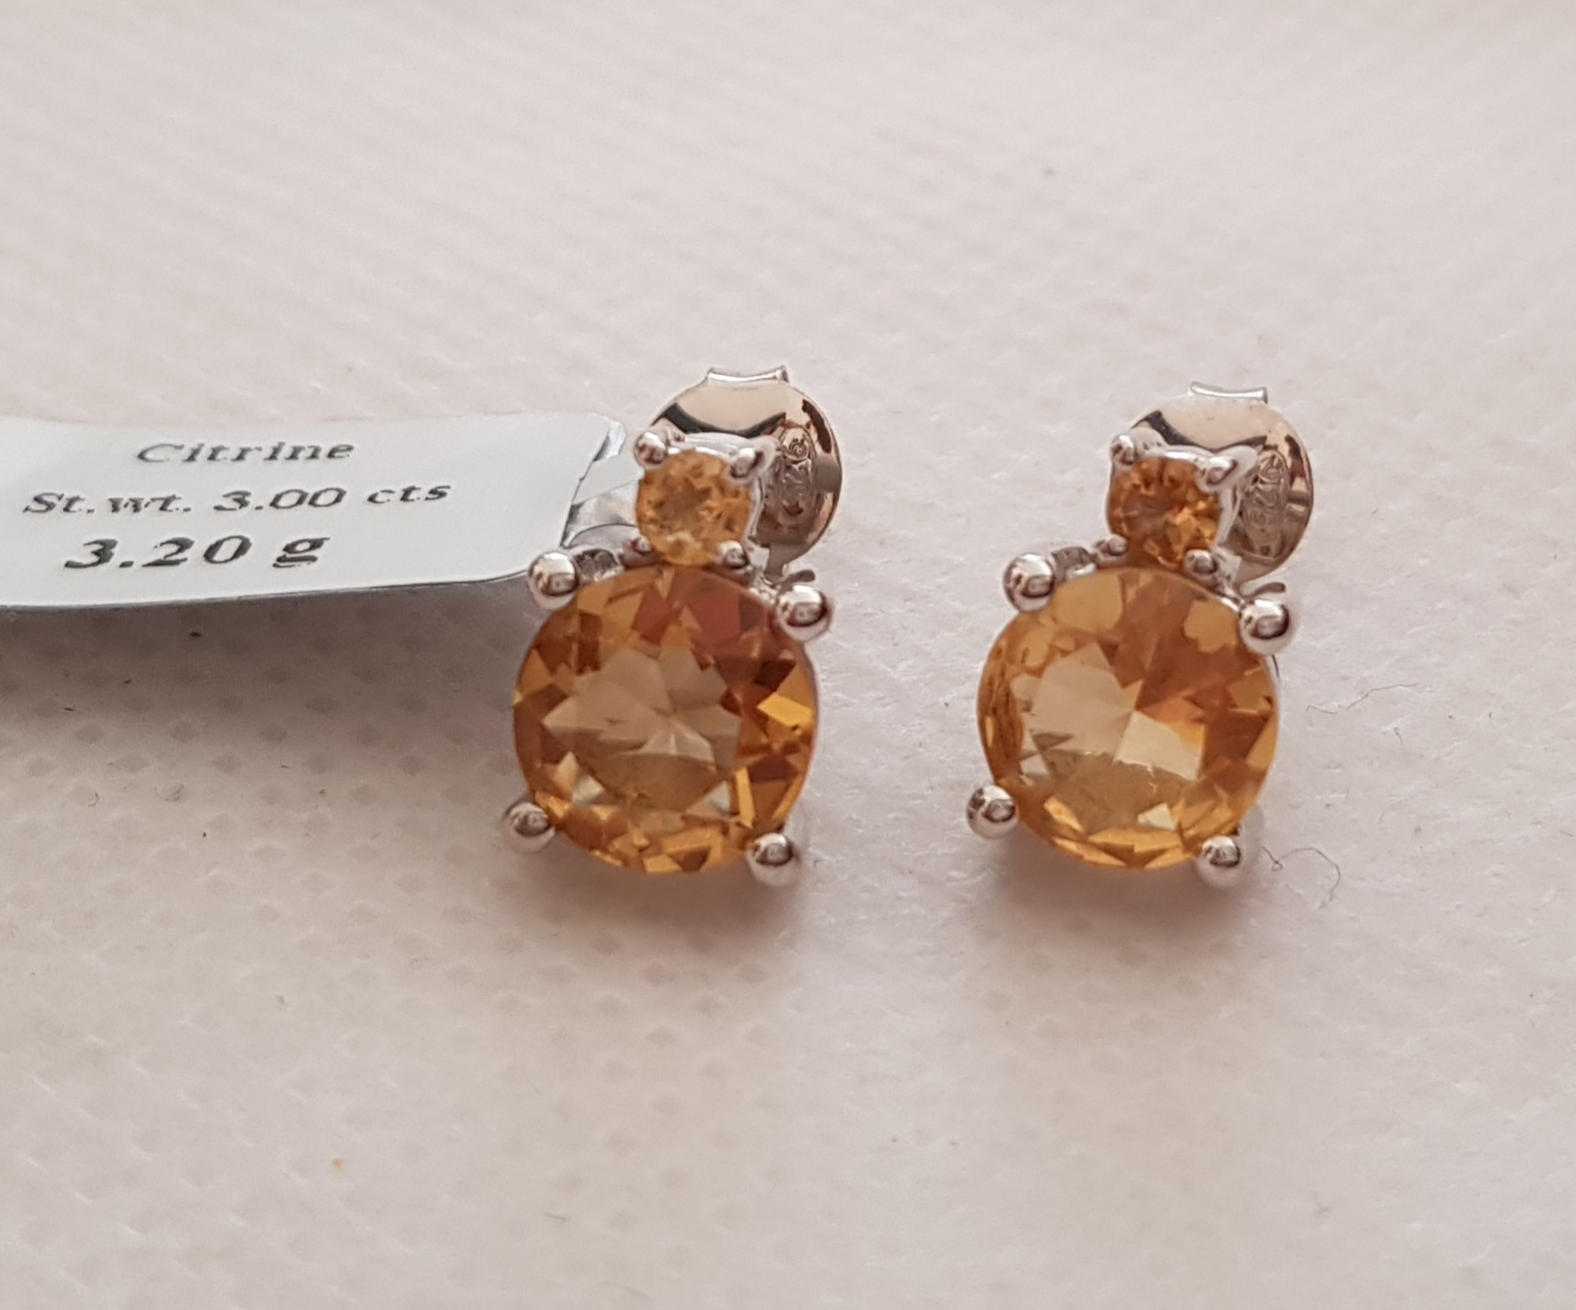 Citrine solitaire studs